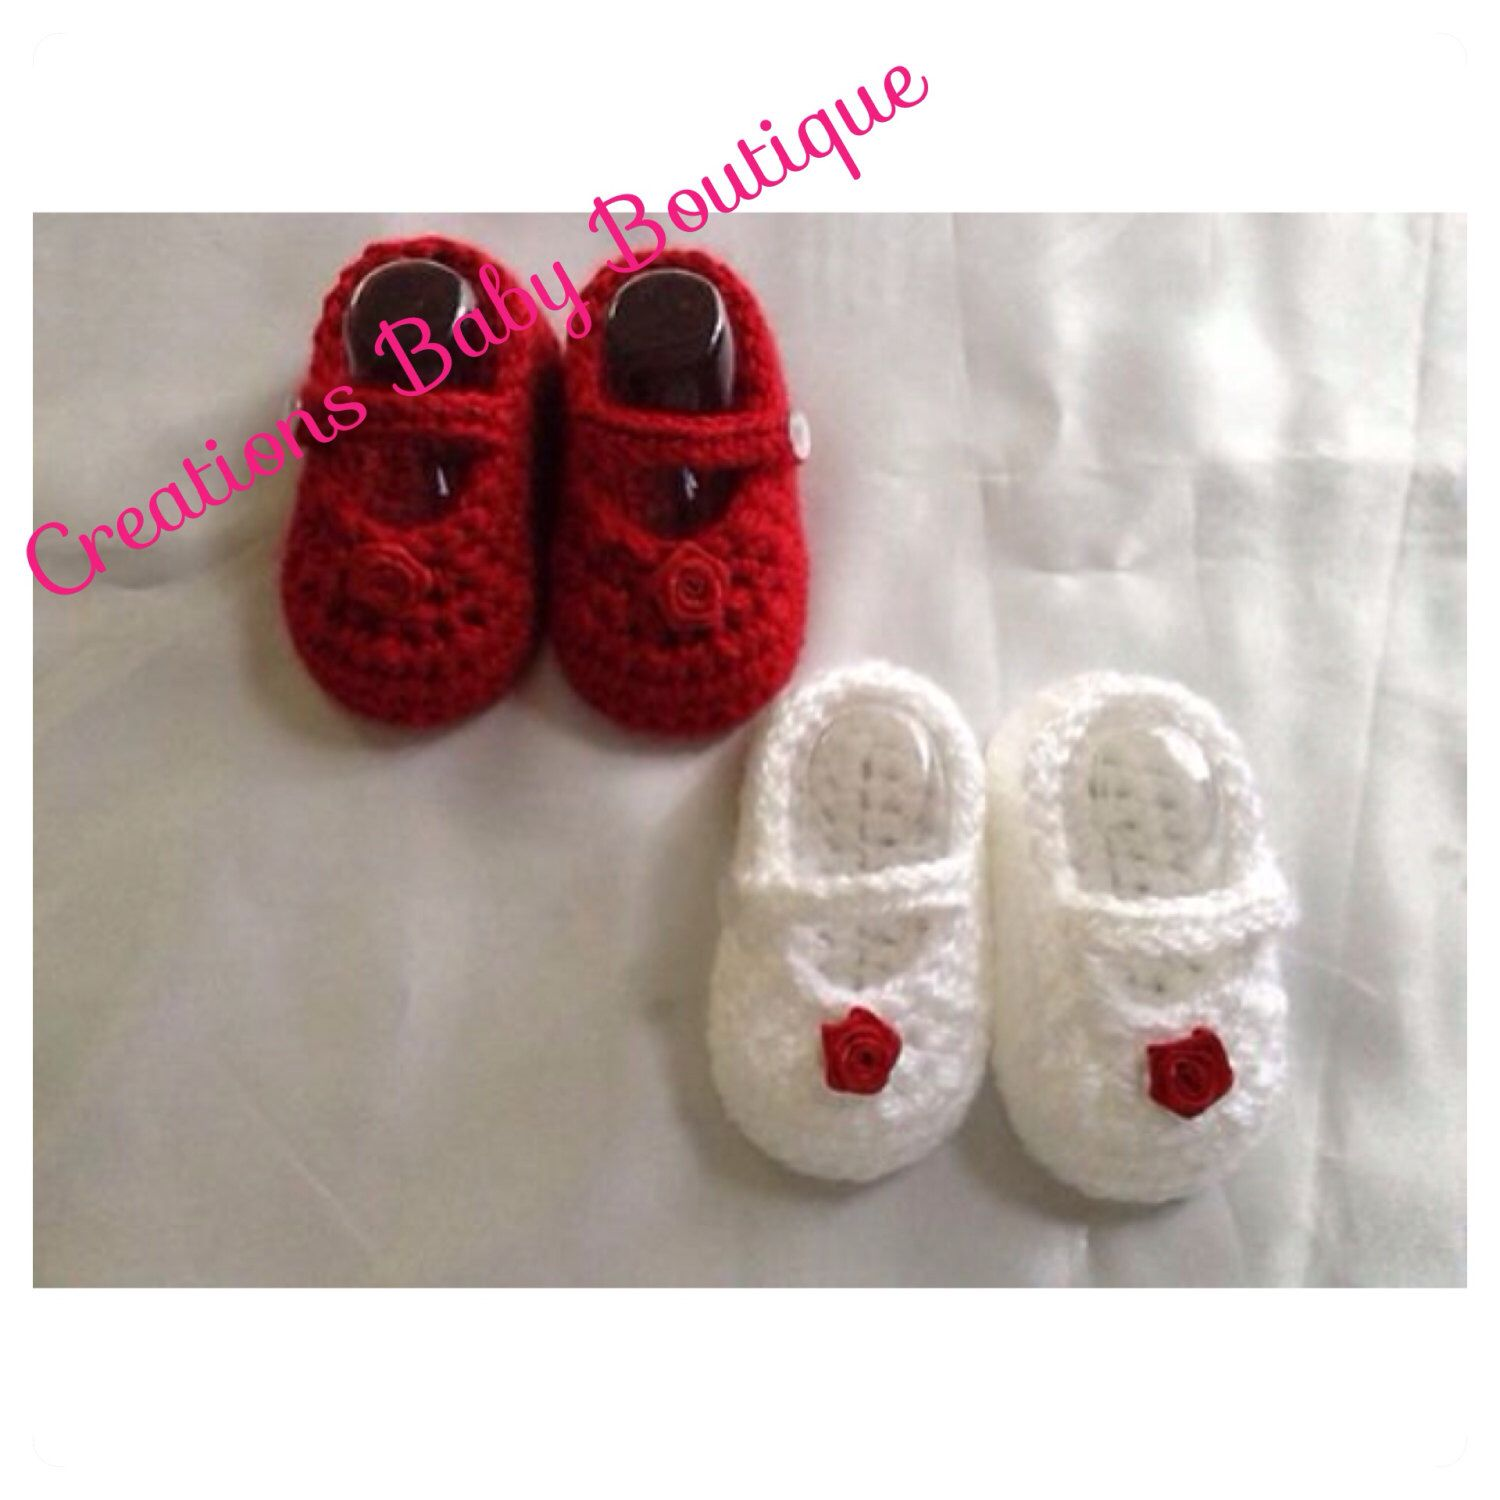 Baby girl shoes , Mary Shanes crib shoes by Creations23baby on Etsy https://www.etsy.com/listing/168300238/baby-girl-shoes-mary-shanes-crib-shoes